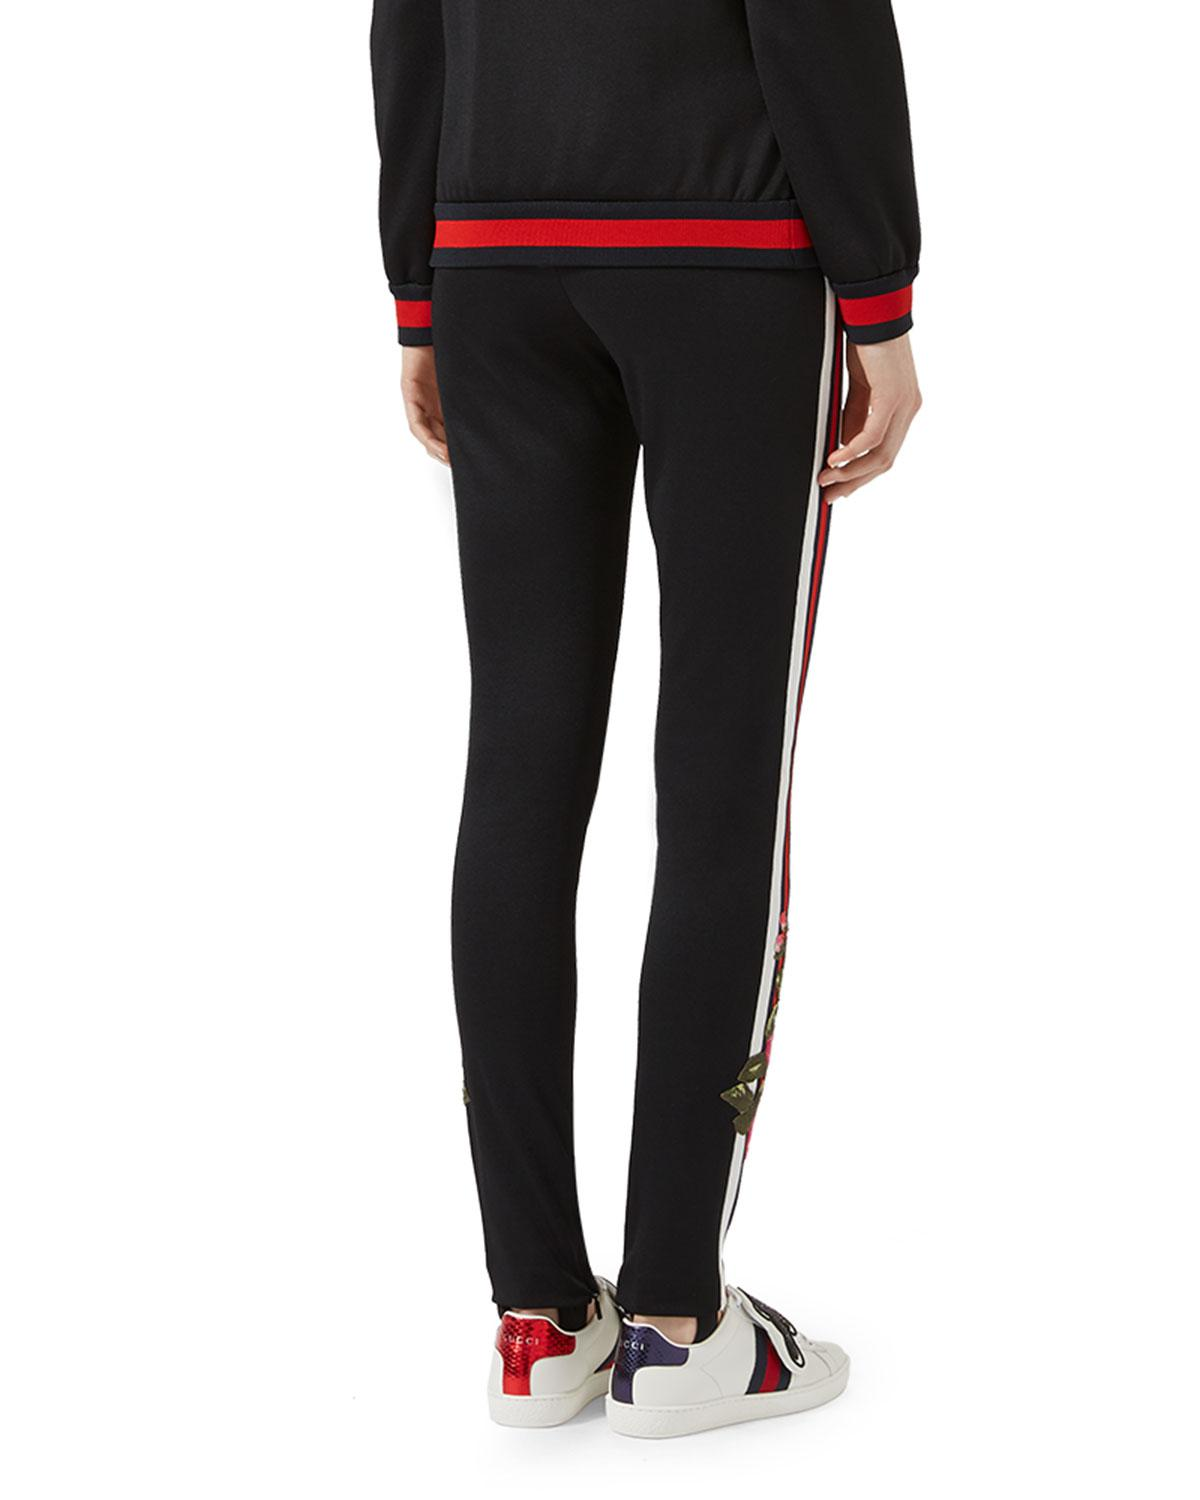 Gucci Embroidered Jersey Leggings in Black | Lyst